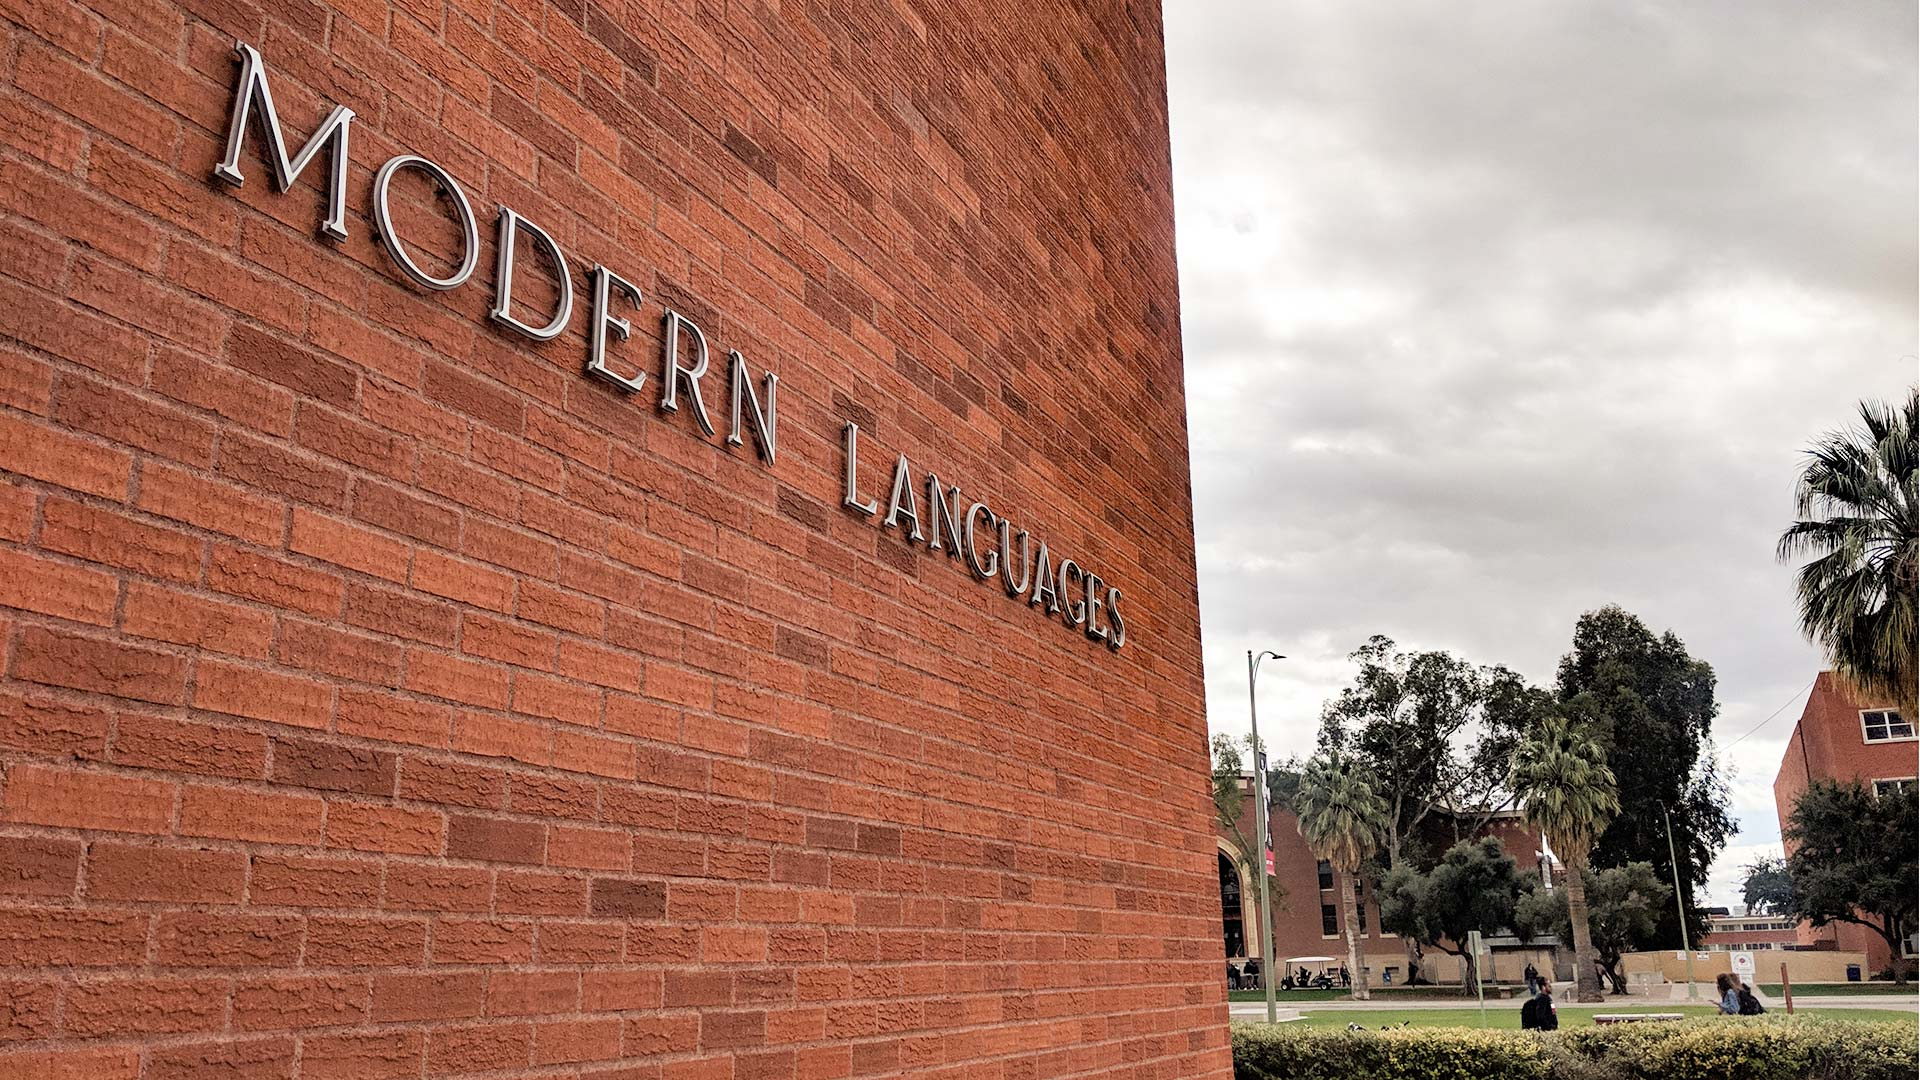 The Modern Languages building on the University of Arizona campus.